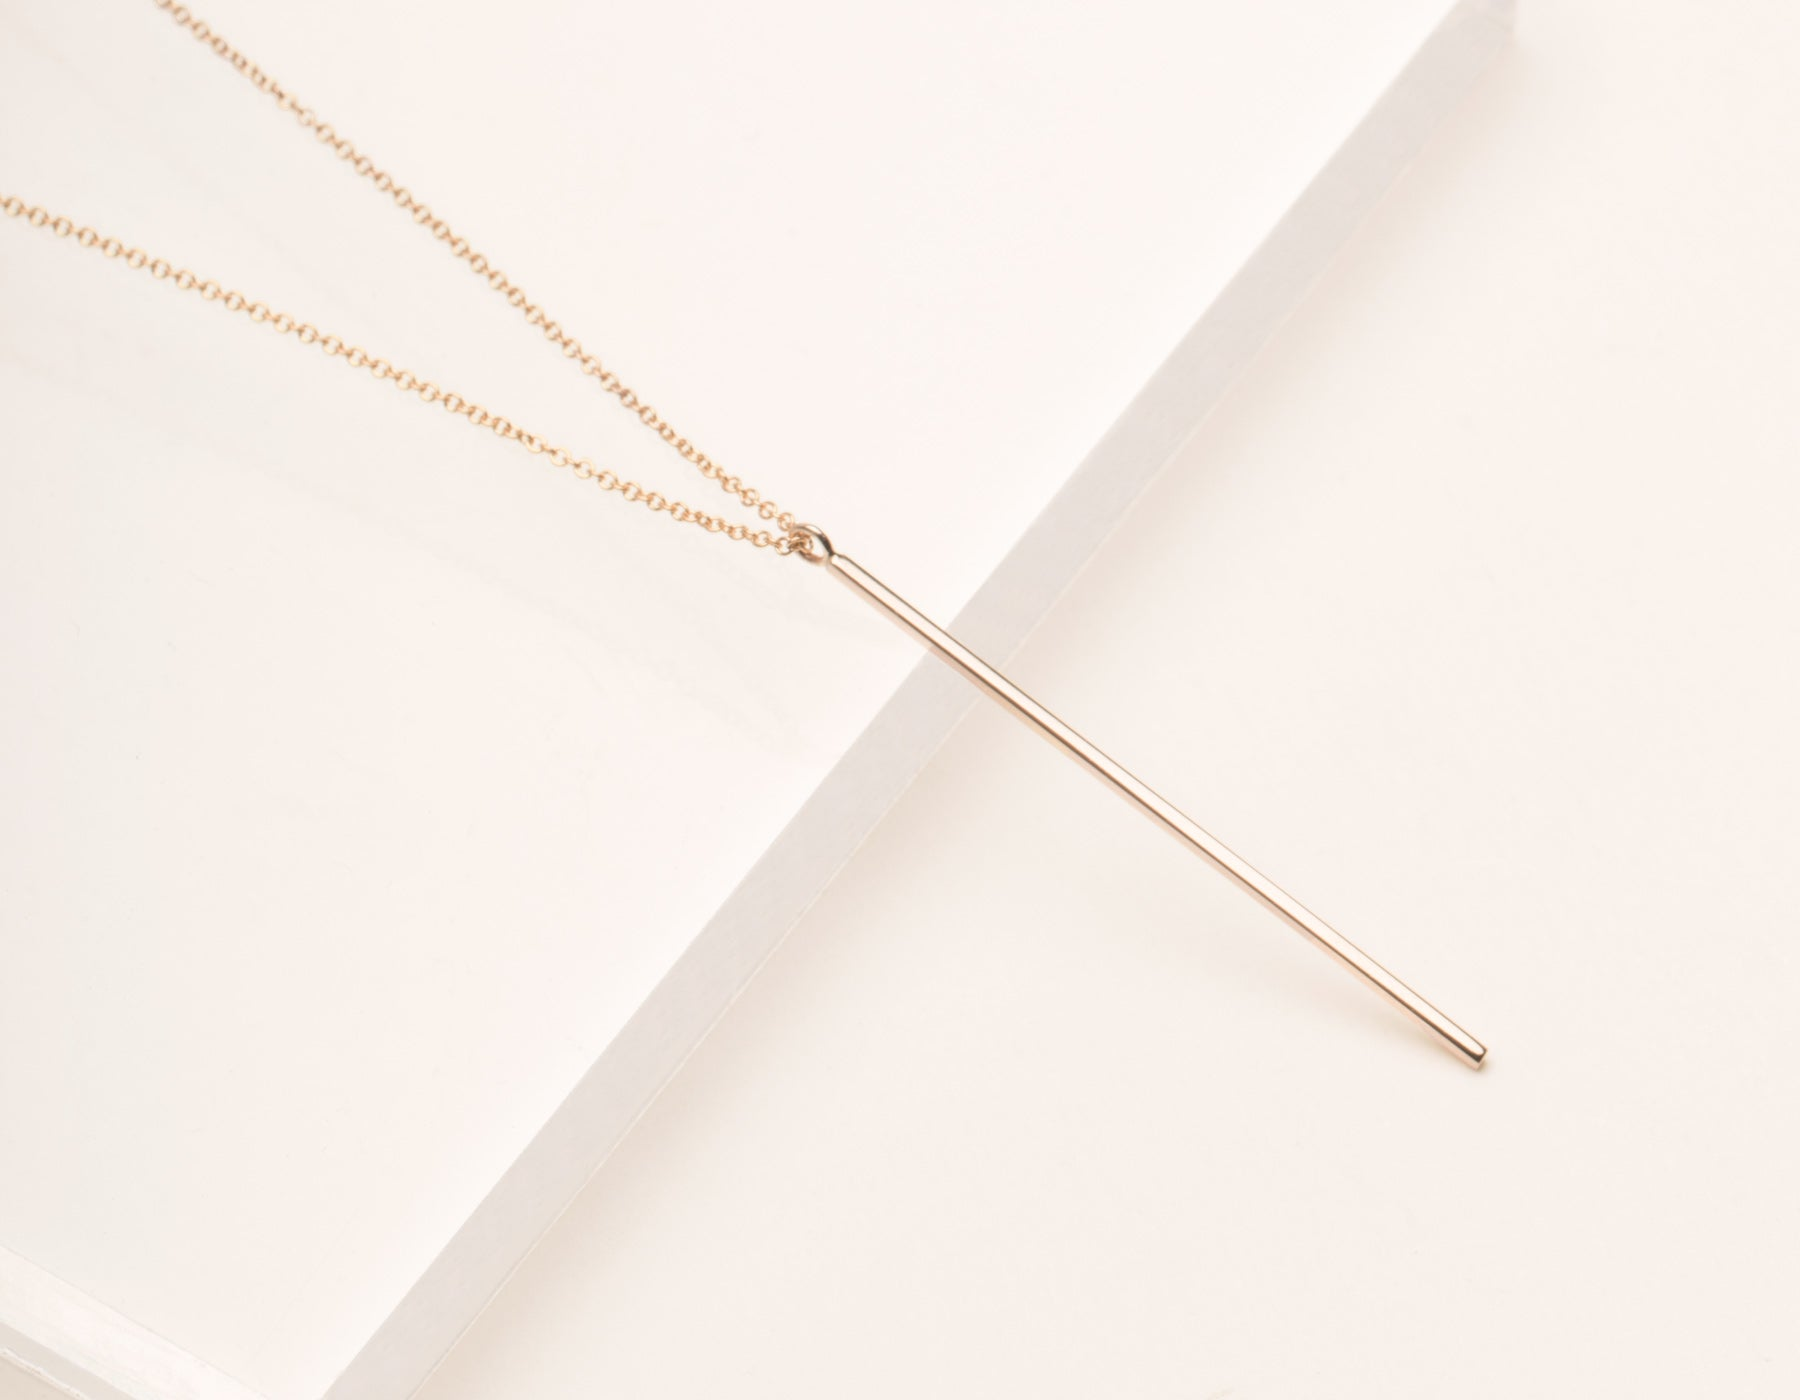 gold swift vertical necklace with bar pendant products delicate lola